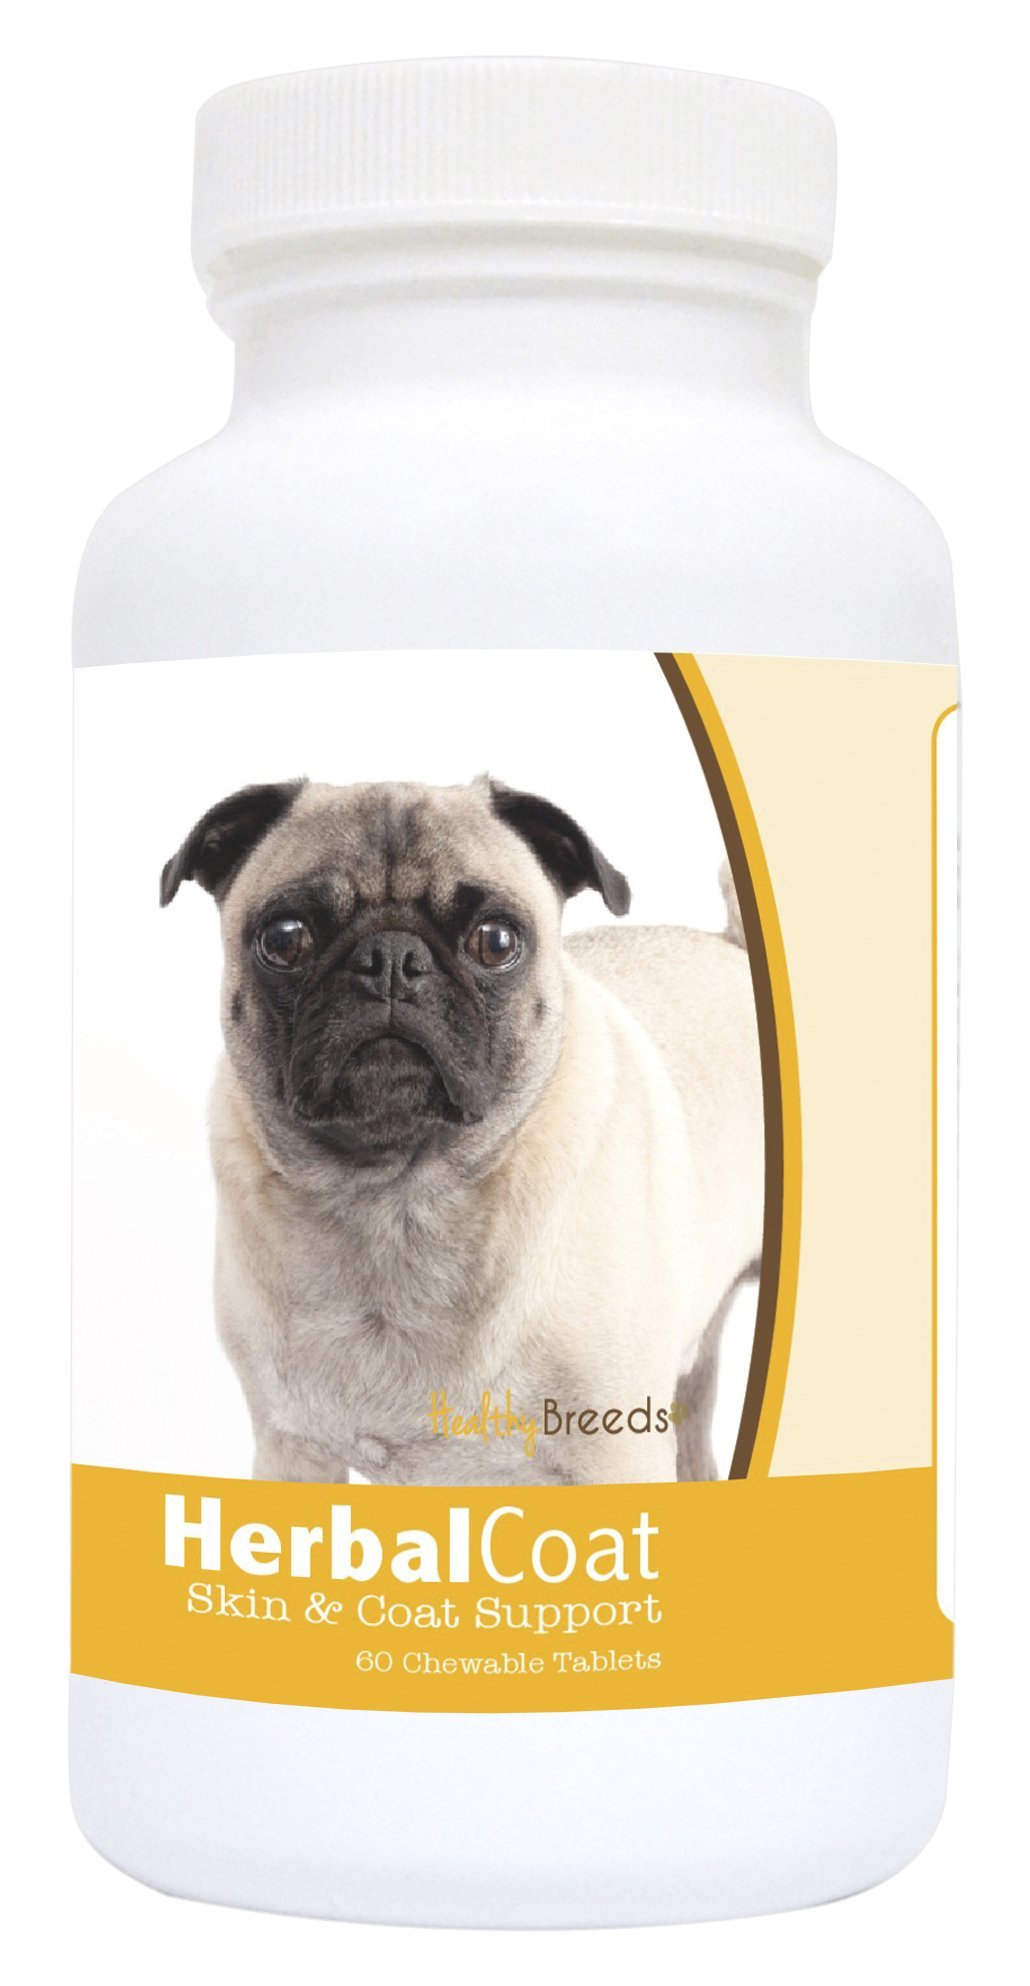 Healthy Breeds Dog Herbal Skin And Coat Support Chewable Supplement For Pug - Over 80 Breeds - All Natural Ingredients - Helps Shedding - 60 Treat Chews by Healthy Breeds